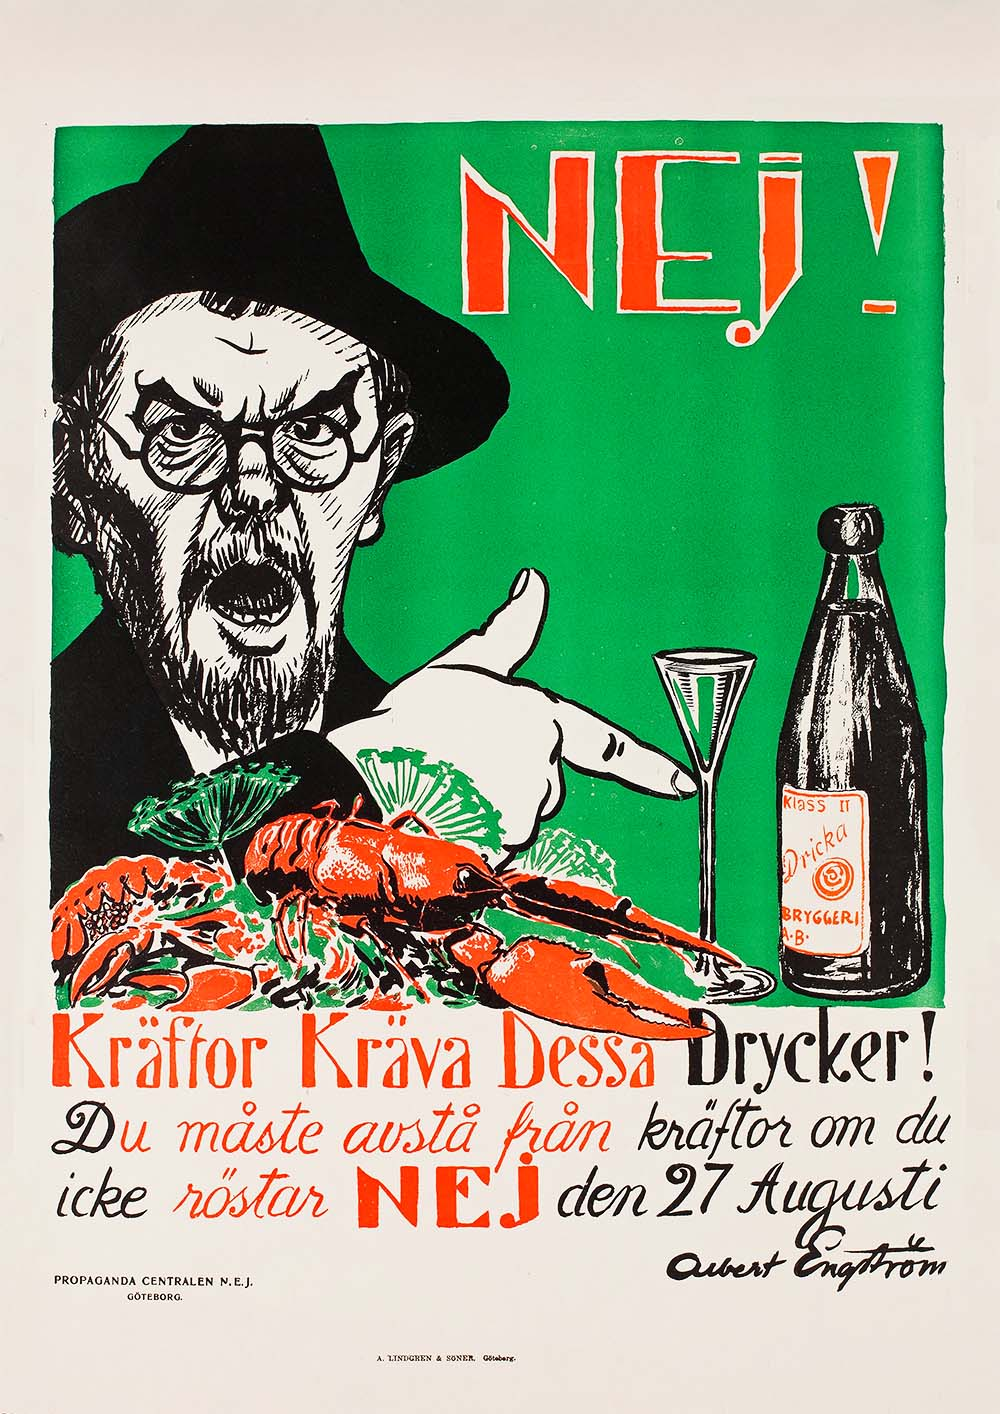 No! Crayfish demands these spirits! – Swedish anti-prohibition poster